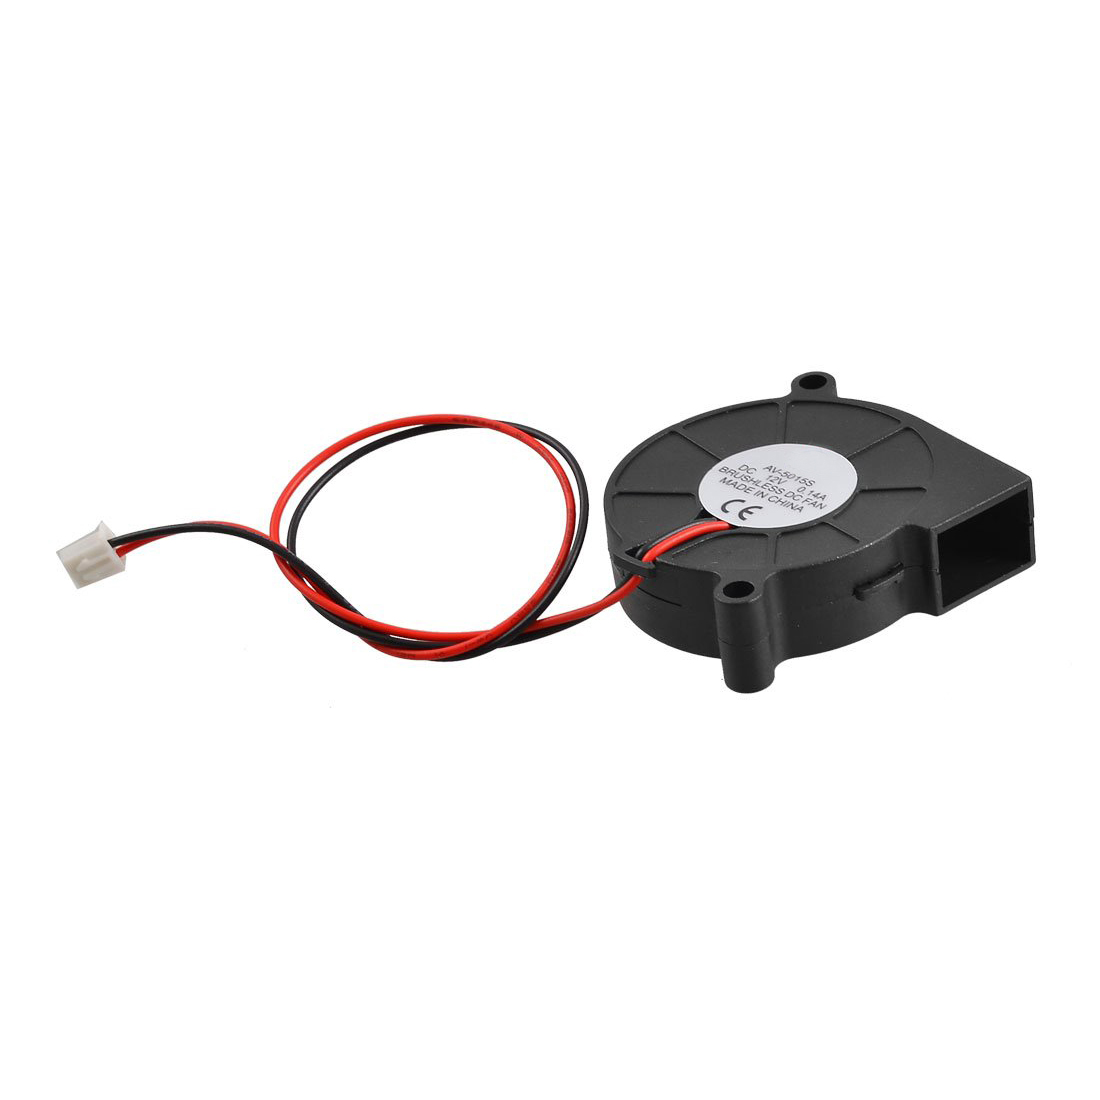 Black Brushless DC Cooling Blower Fan 5015S 12V 0.14A 50mm x 15mm Turbo Blower Fan 2 Wire gdstime 1 piece 2 wire cooling brushless exhuat blower cooling fan 120mm 2 pin 120x120x32mm dc 12v 12032 sleeve bearing